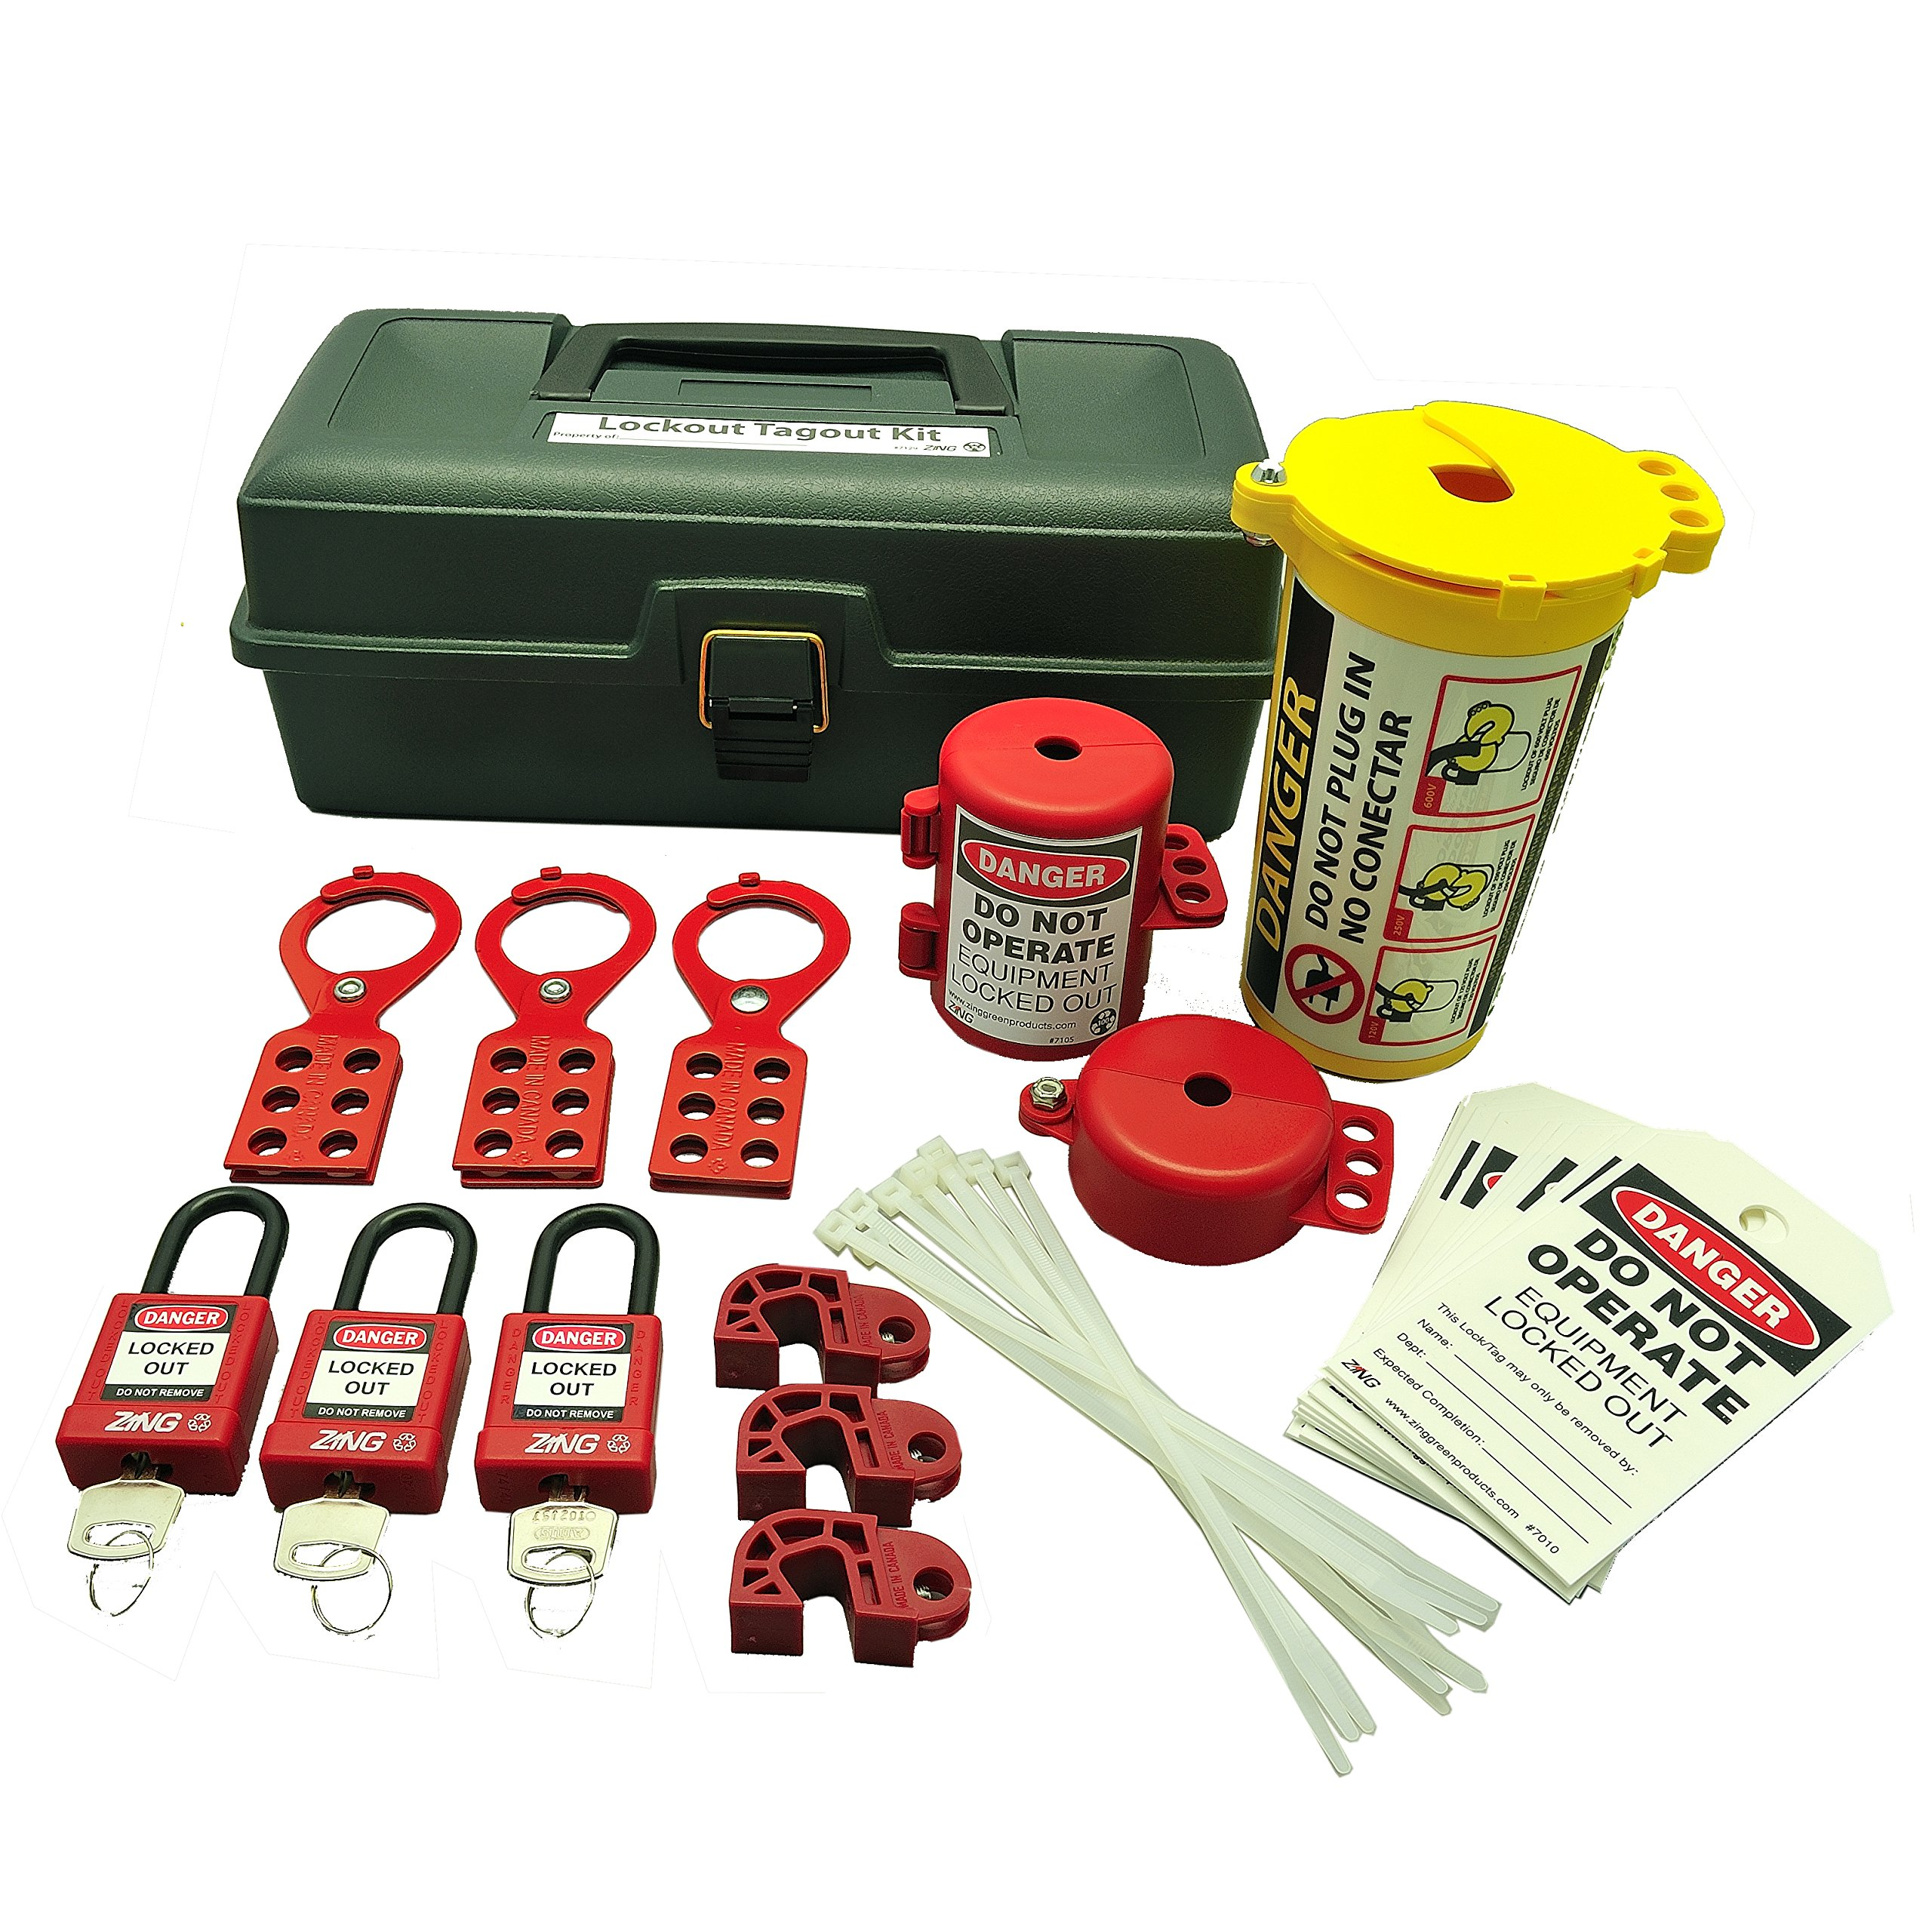 ZING 7129 RecycLockout Lockout Tagout Kit, 32 Component, Deluxe Tool Box by Zing Green Products